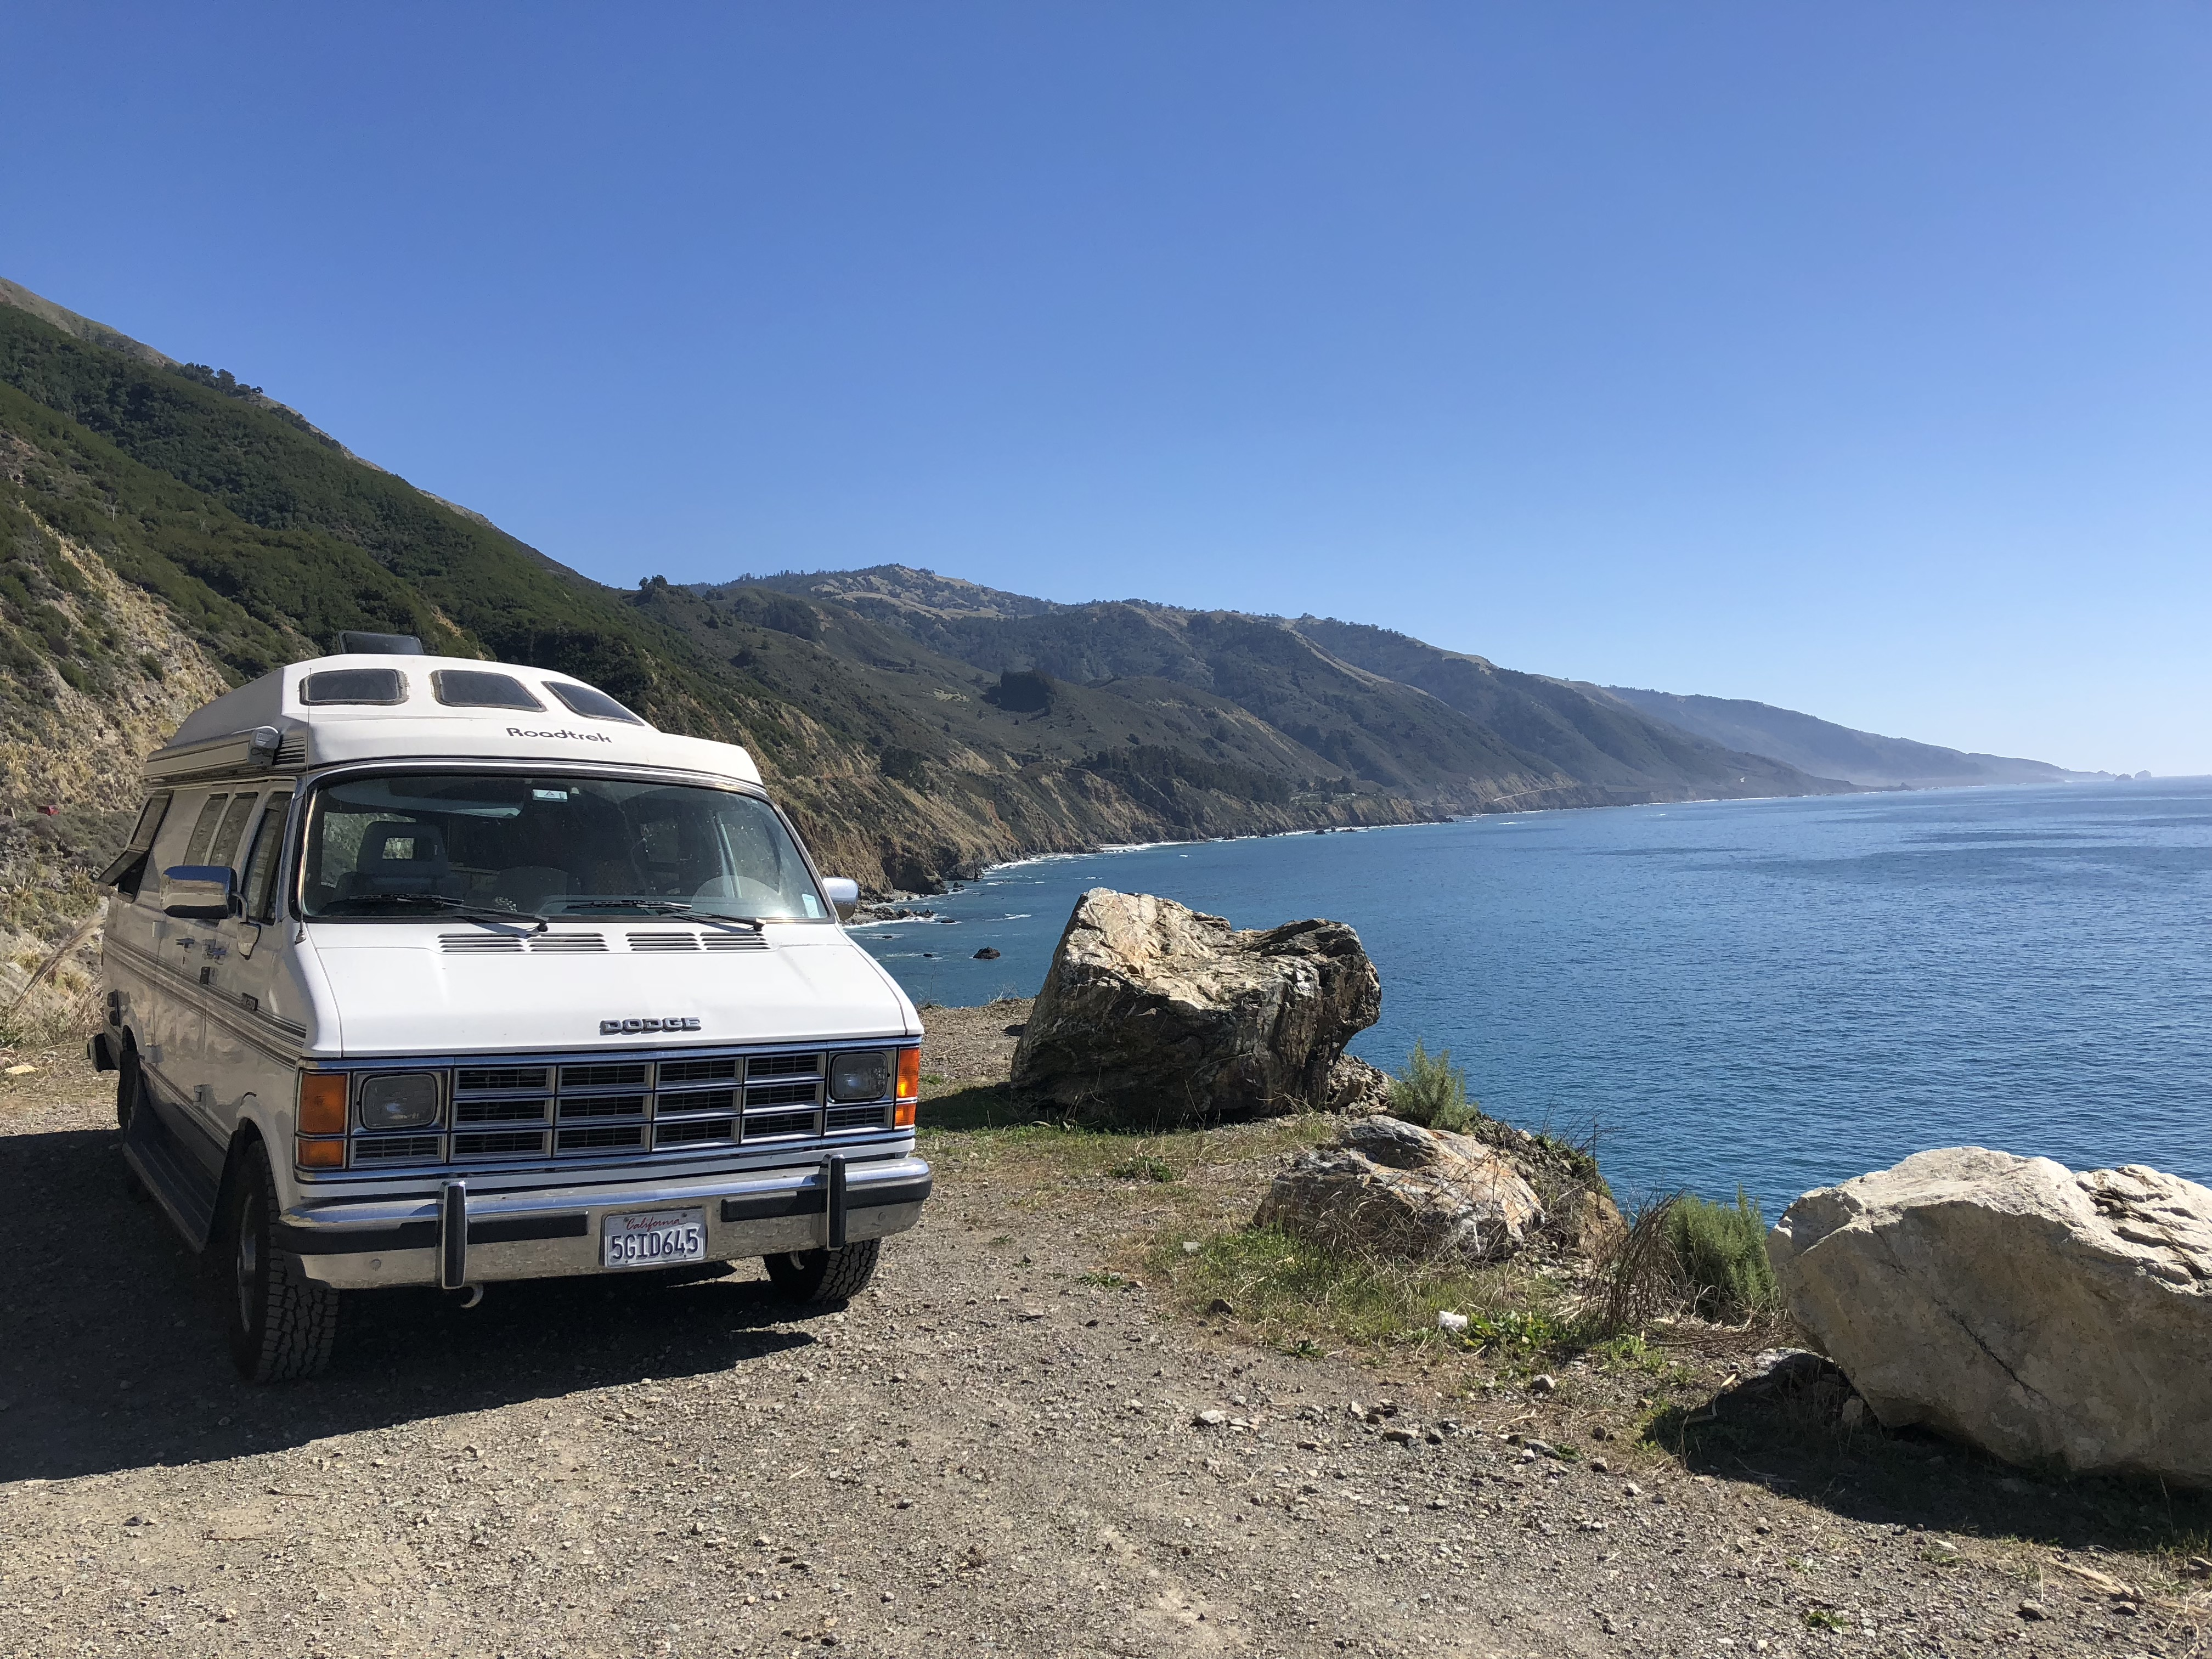 A van parked in a turnout on Highway 1